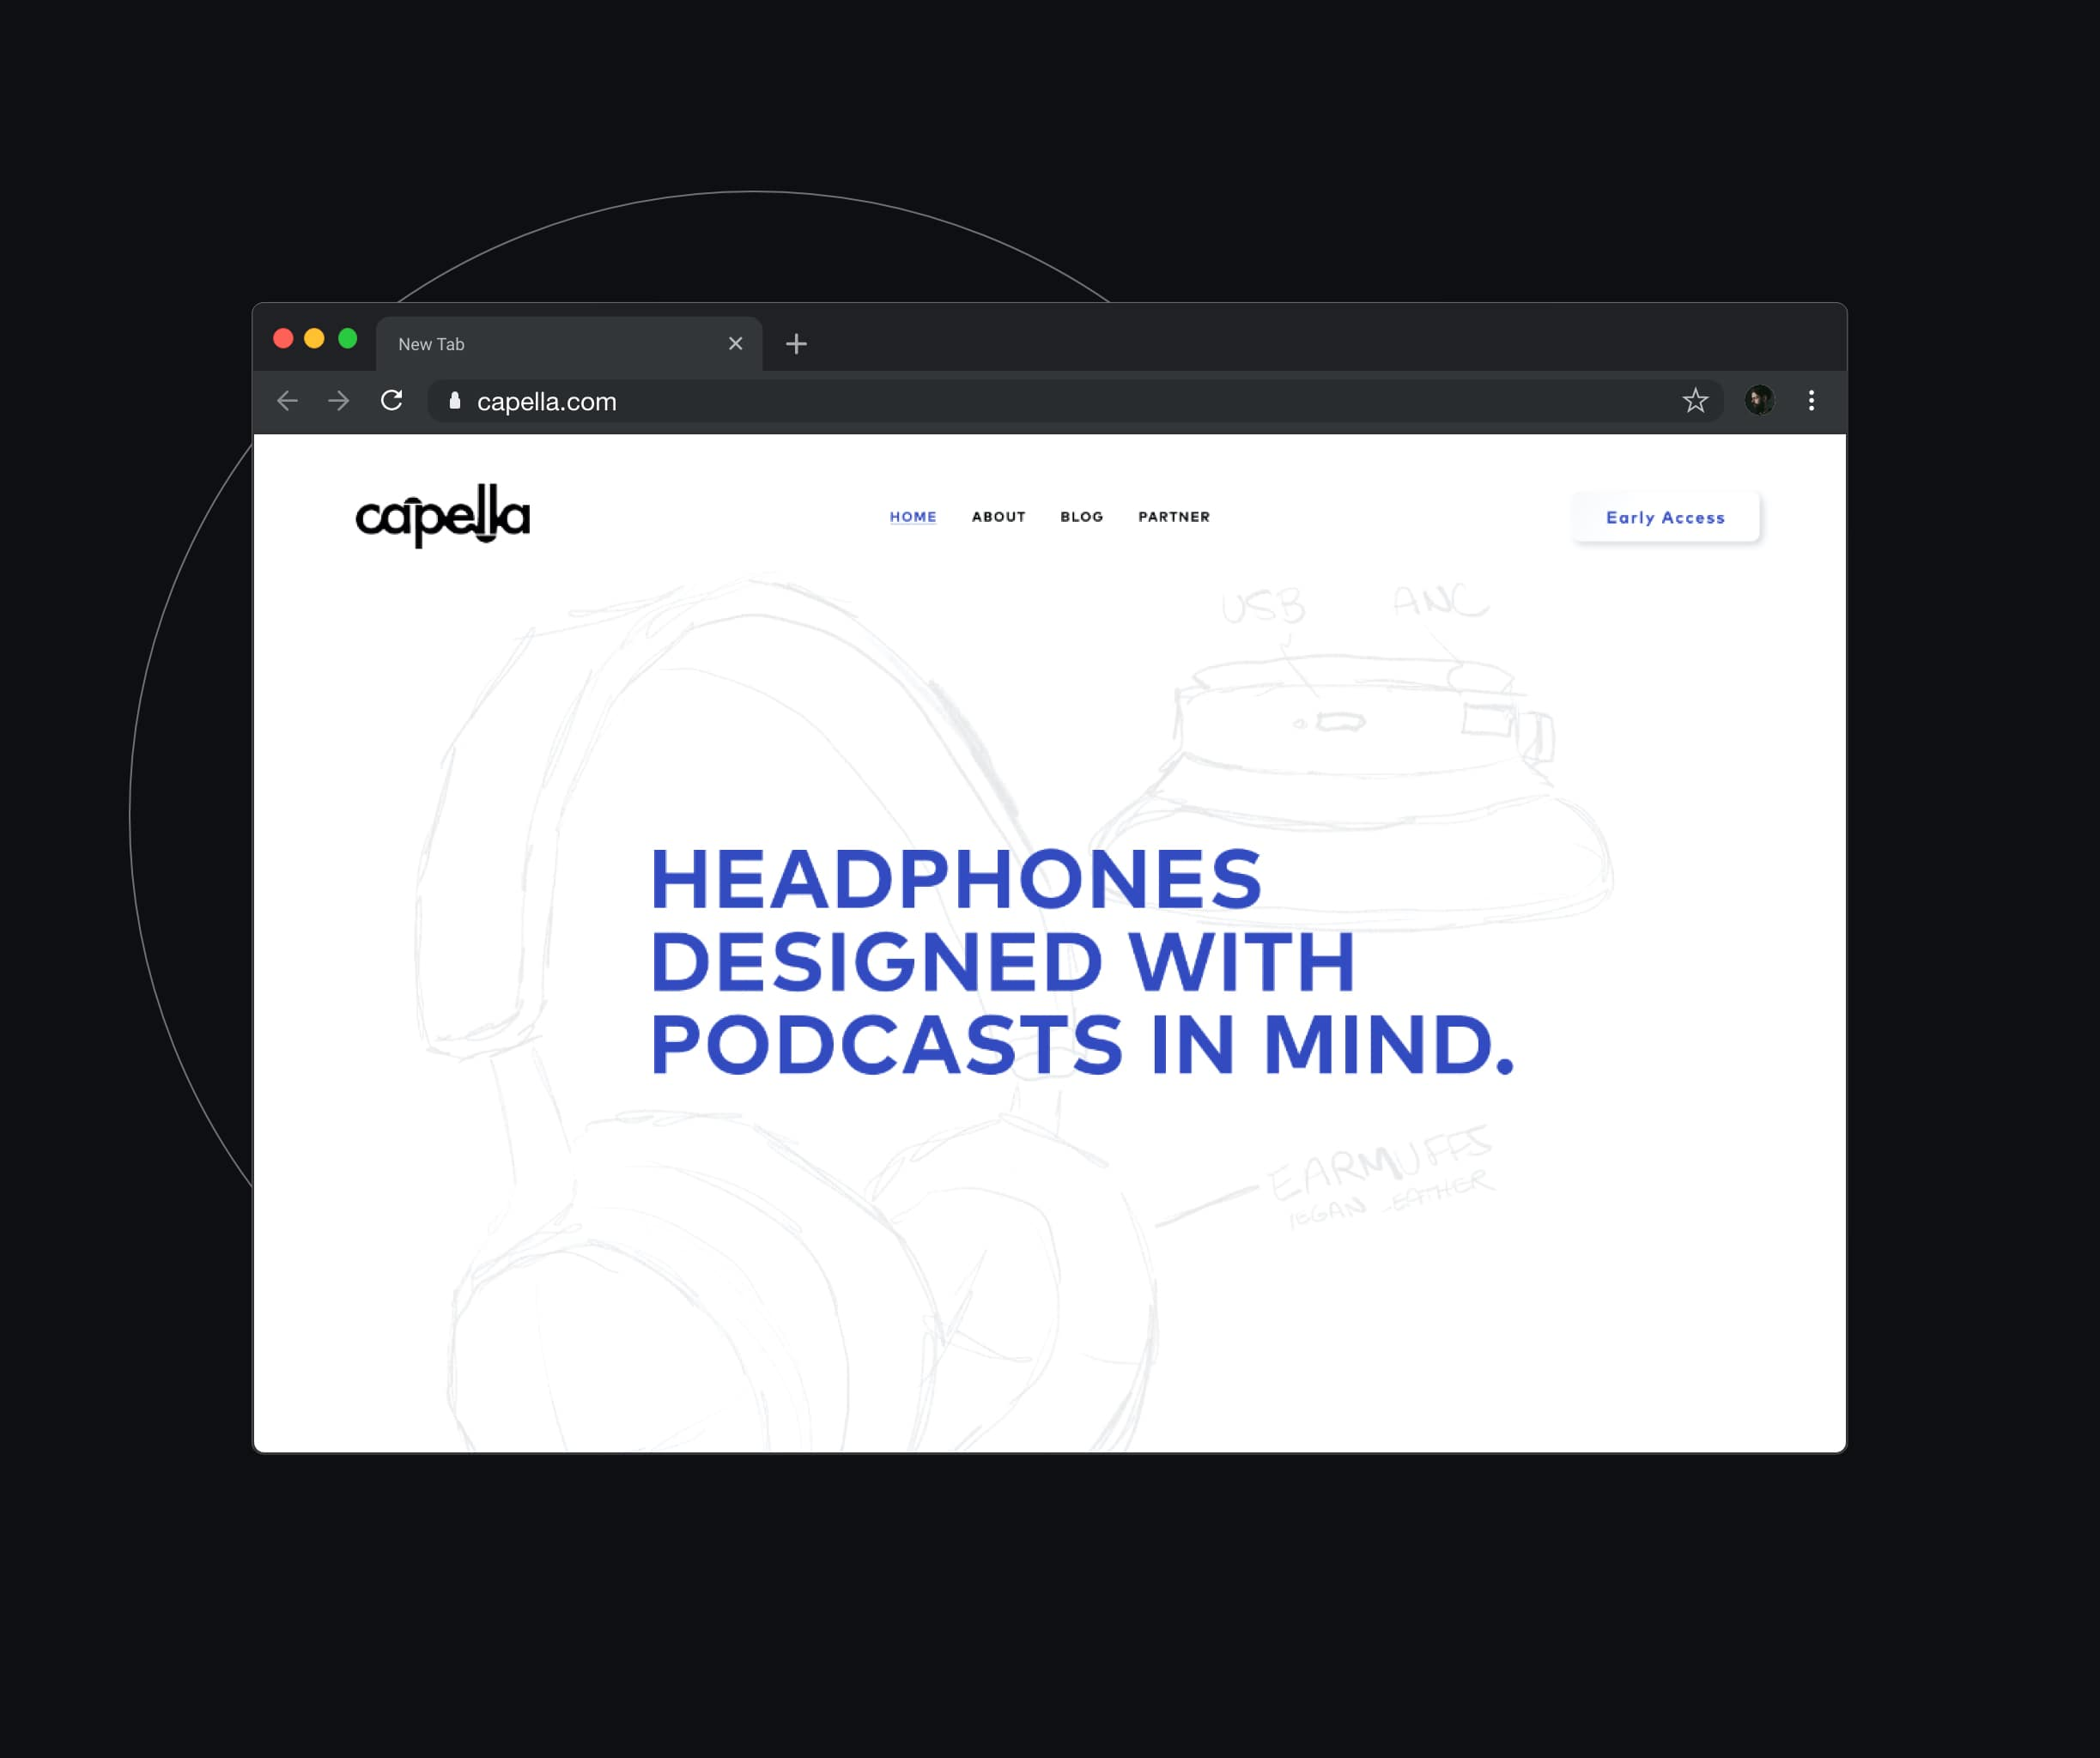 Image of website for headphone company.